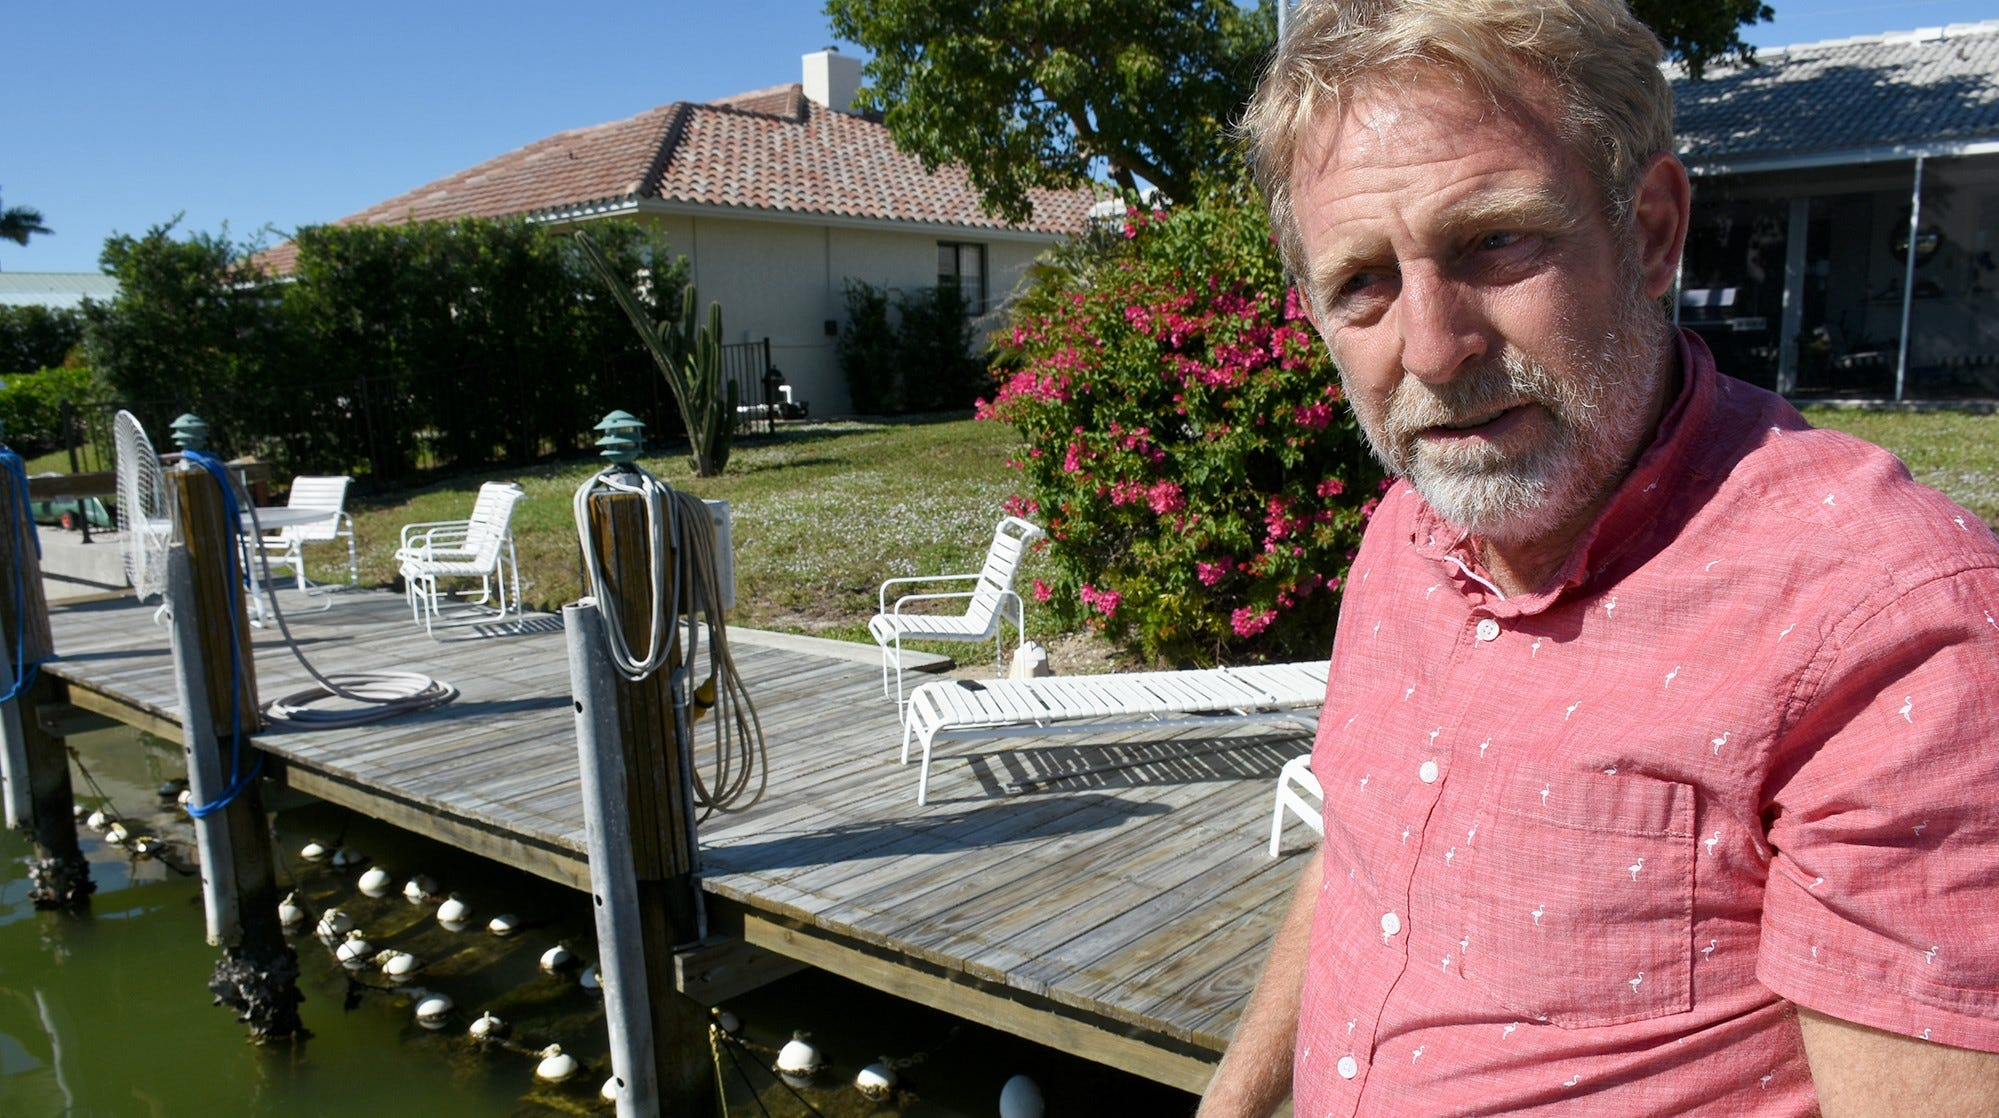 Jim Timmerman, a Marco Island resident, has been on a quest to improve the quality of the water that surrounds the island.